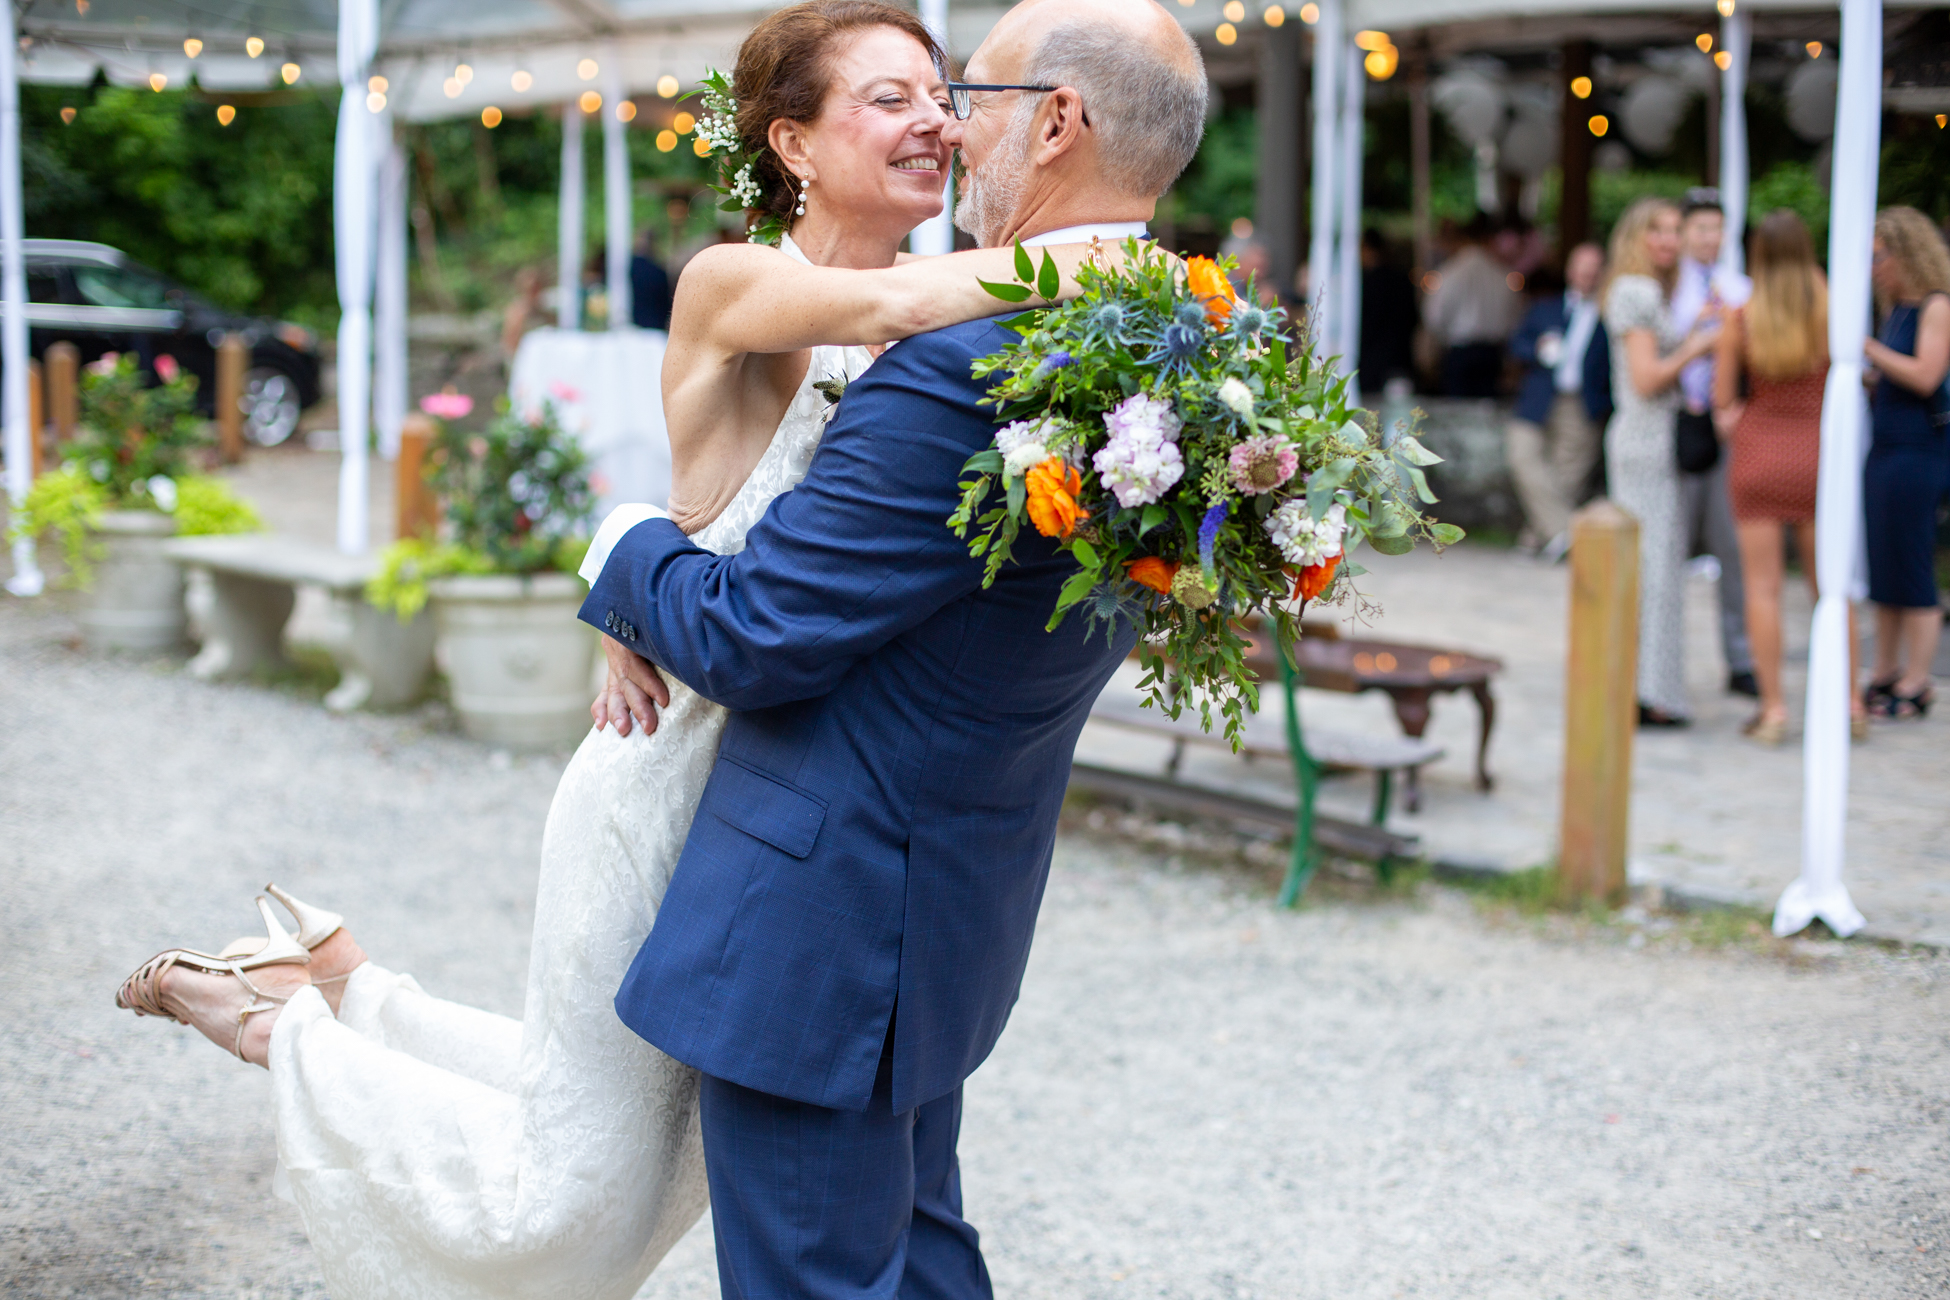 Melton-Kessler Wedding at Valley Green Inn by Avi Loren Fox LLC-43.jpg